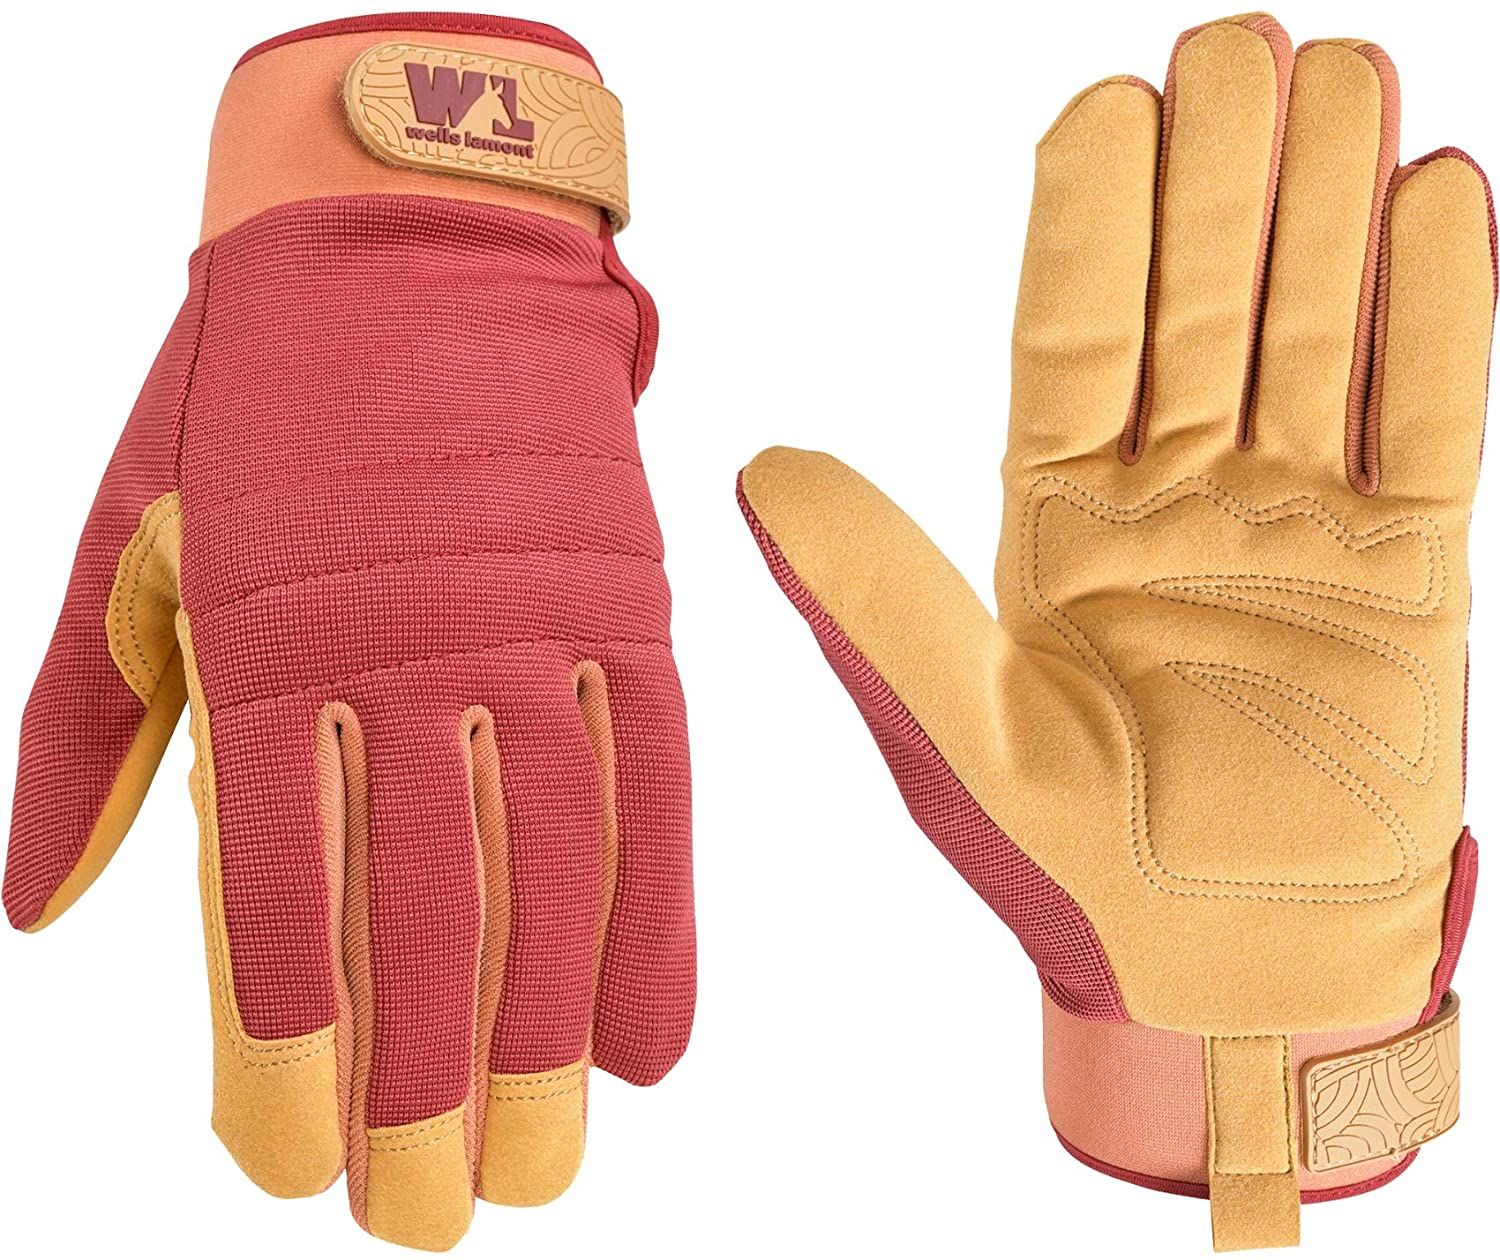 Women's Hi-Dexterity Synthetic Leather Palm Work Gloves, Small (Wells Lamont 7729)